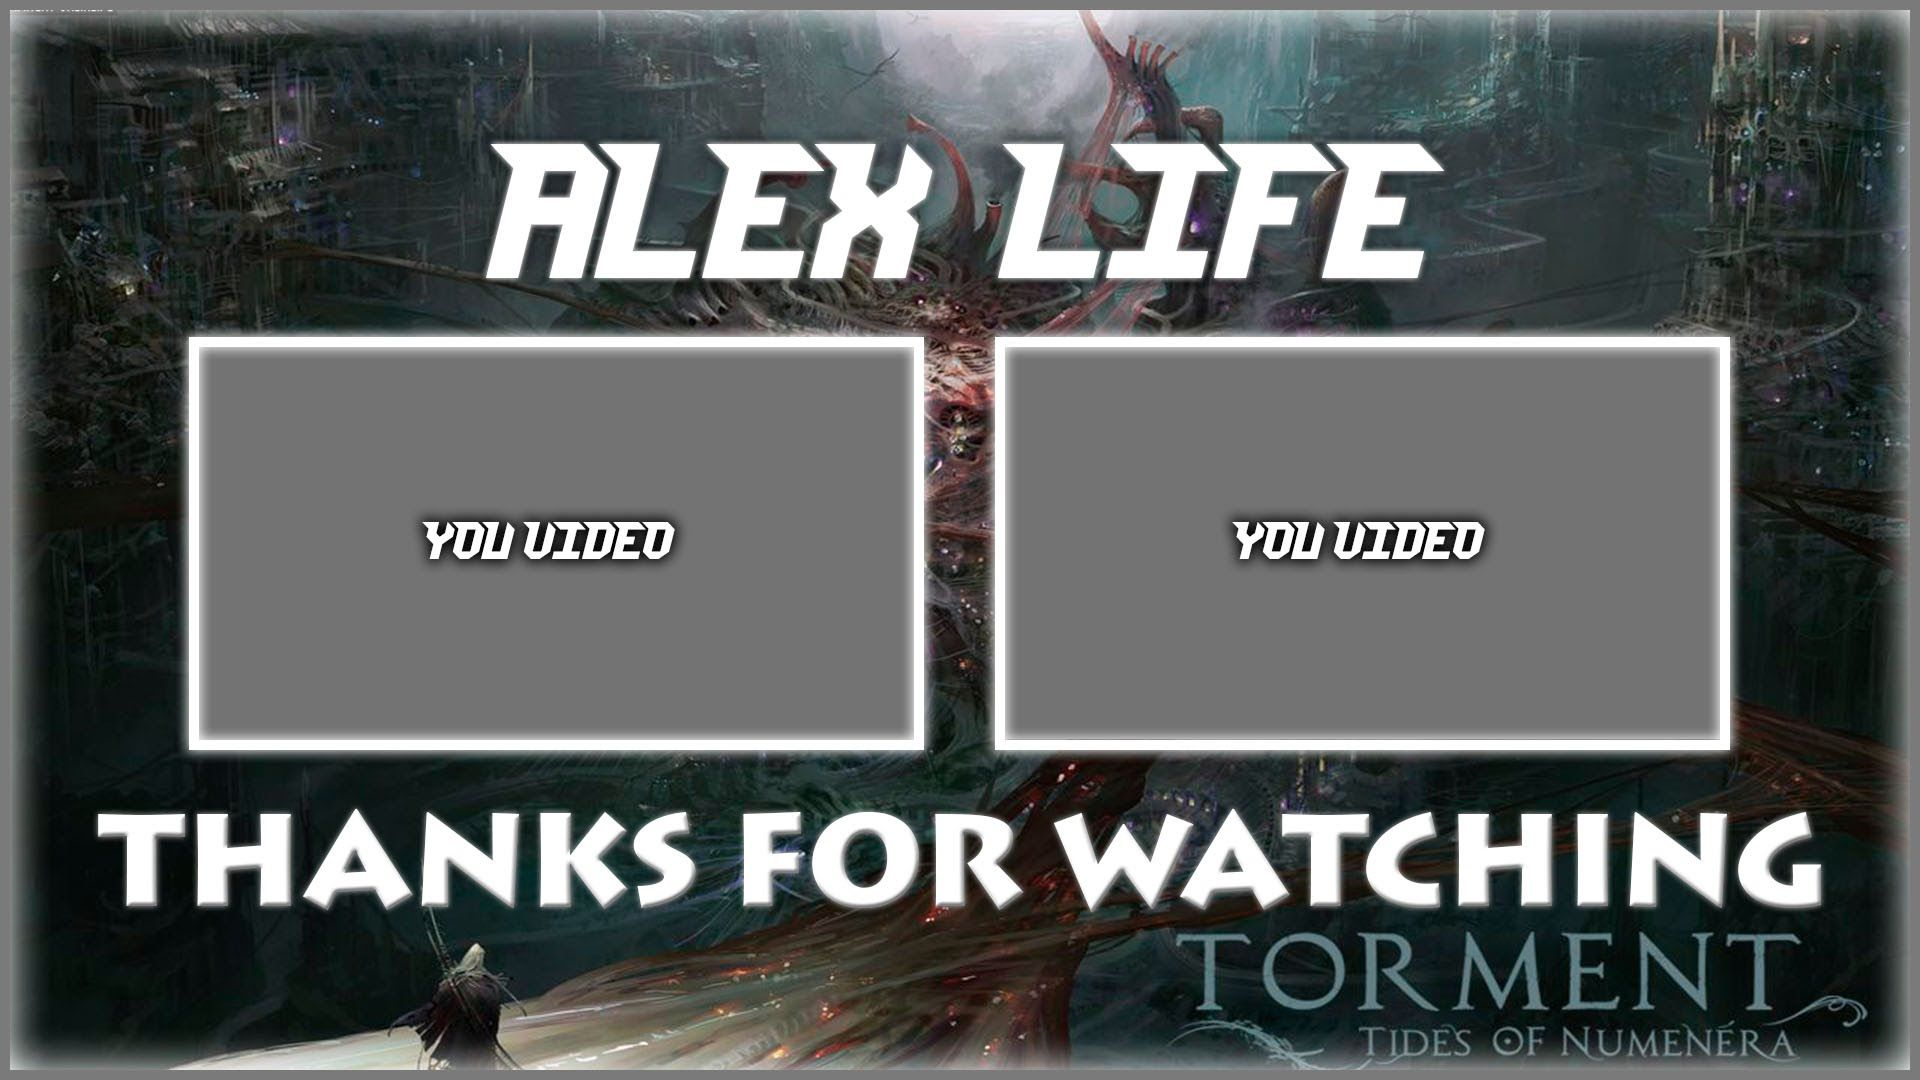 Torment tides of numenera outro template free sony vegas pro 11 torment tides of numenera outro template free sony vegas pro 11 12 13 pronofoot35fo Choice Image